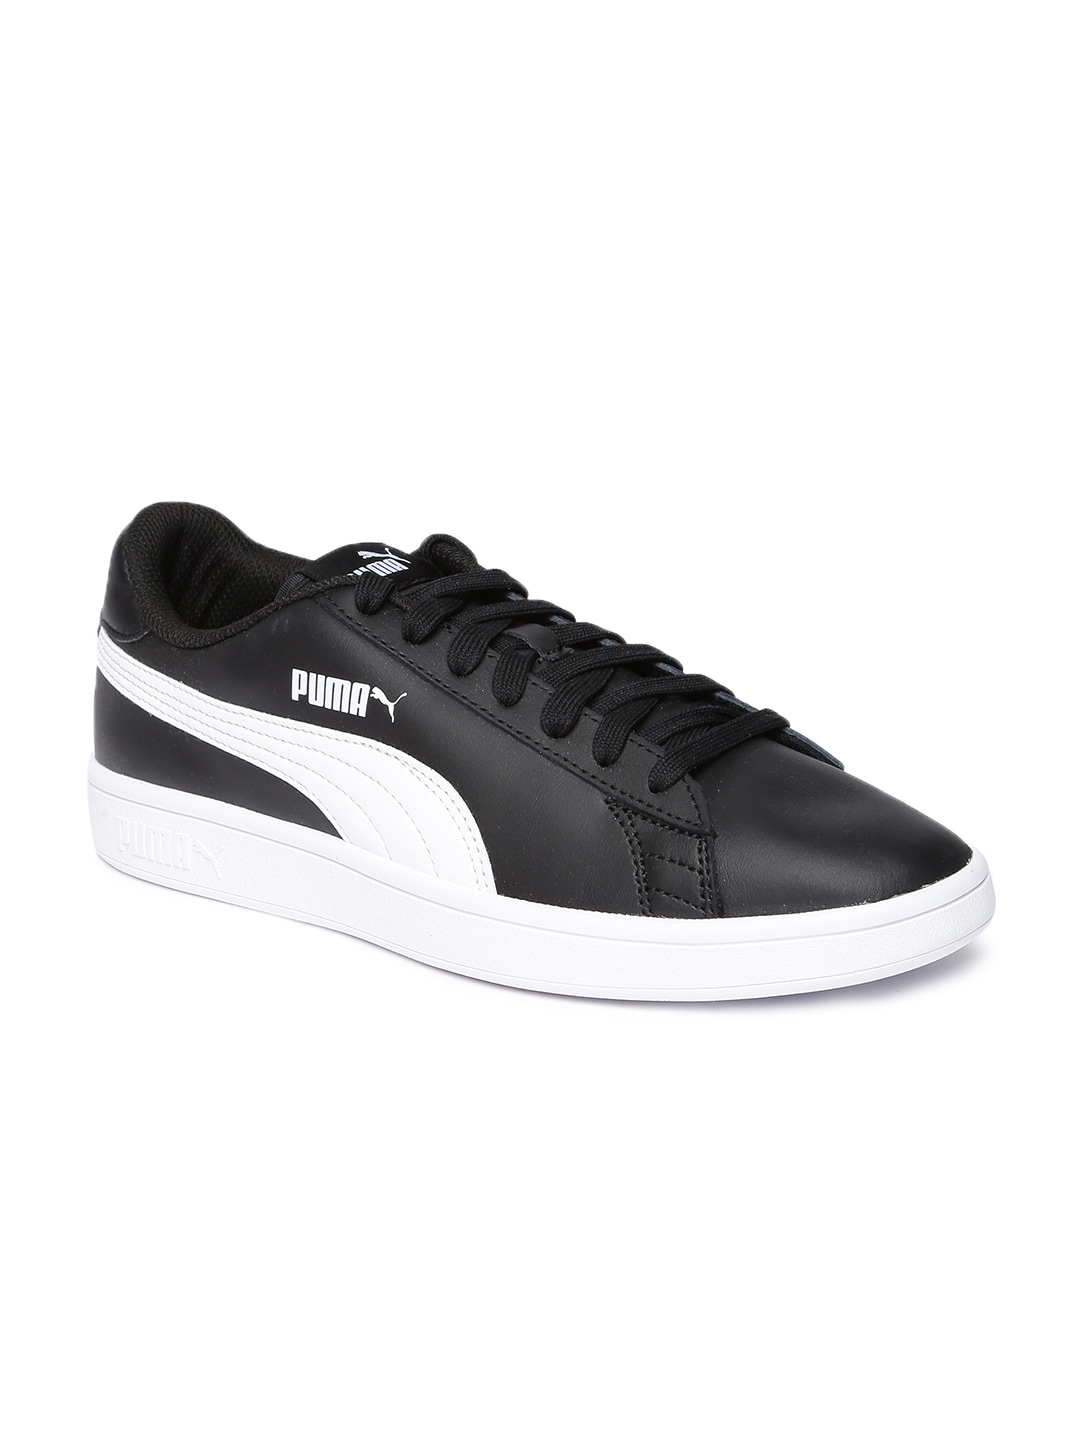 50ff02d308e Puma Shoes - Buy Puma Shoes for Men   Women Online in India